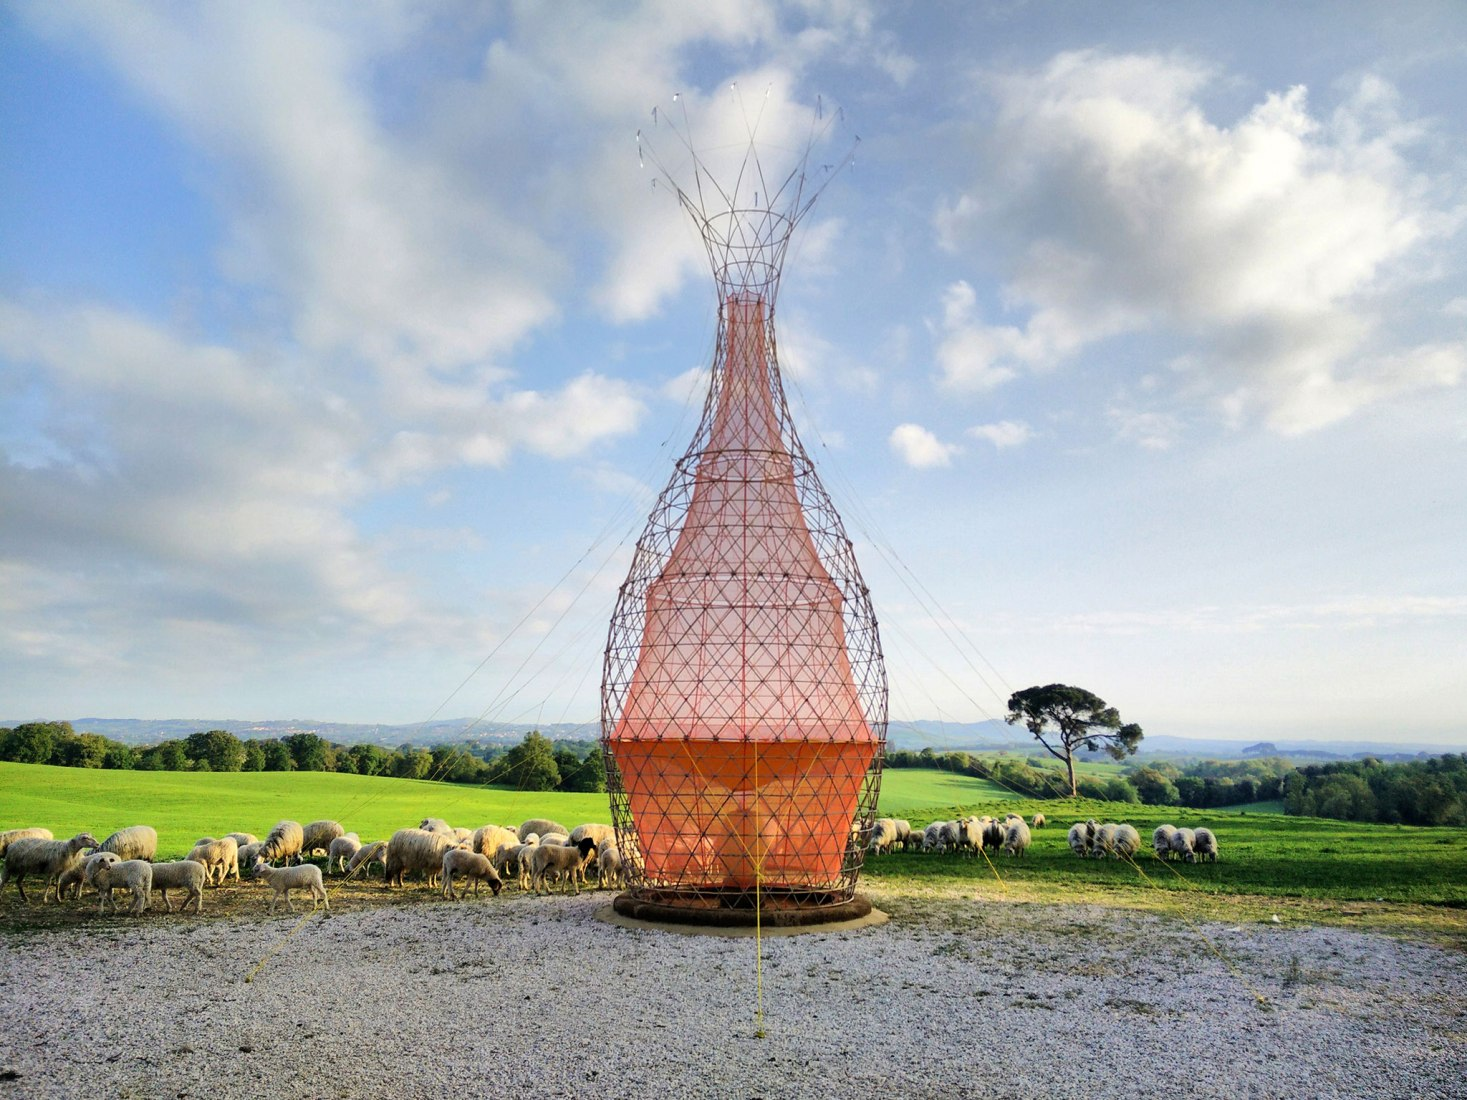 Sheep around Warka. Warka Water by Arturo Vittori. Photograph © Architecture and Vision / Arturo Vittori.